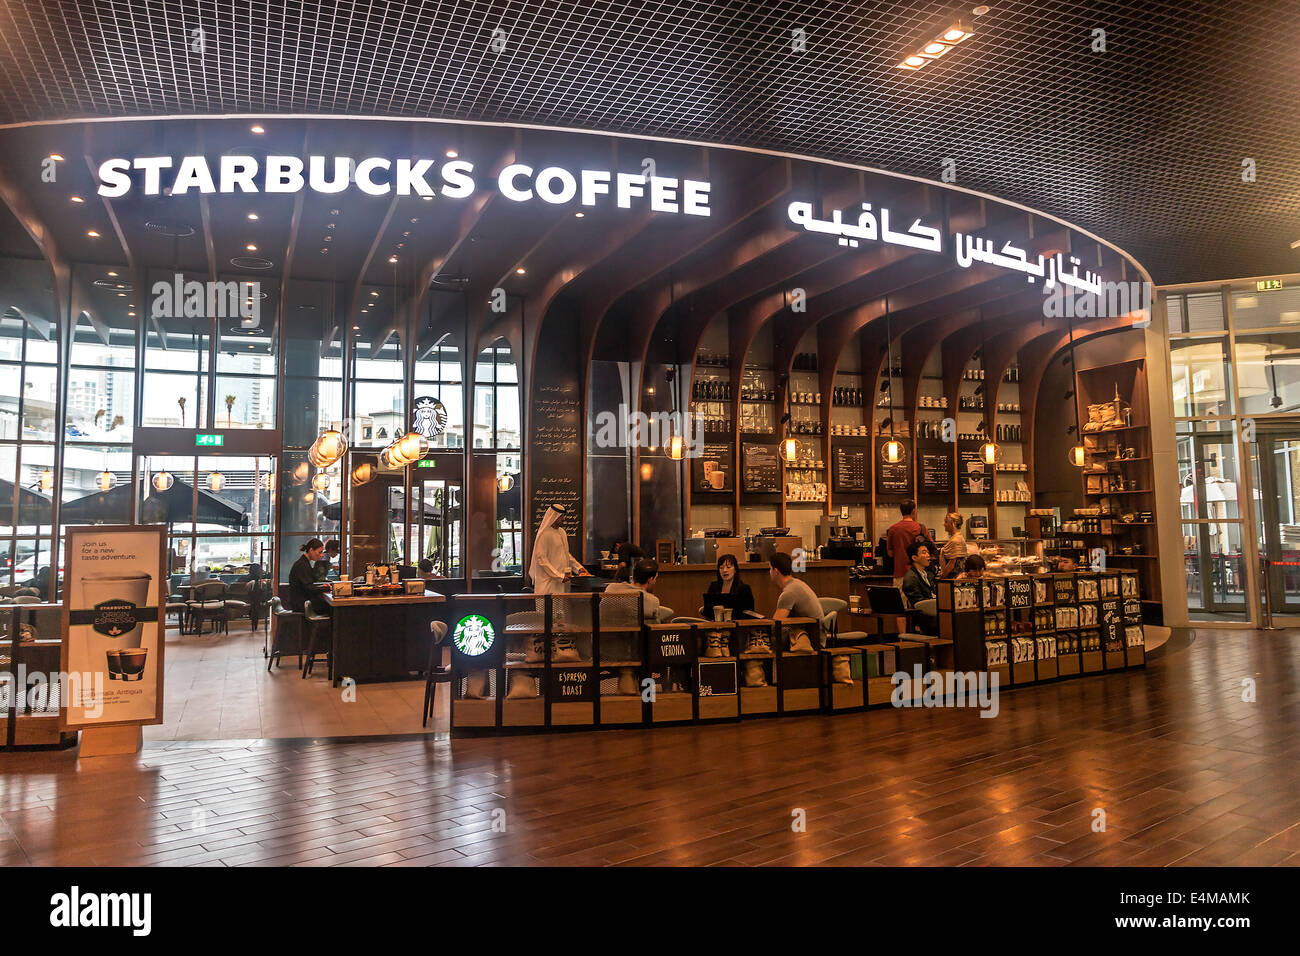 dd3e20deb Starbucks coffee shop with local man in traditional Arab dress in the Dubai  Mall